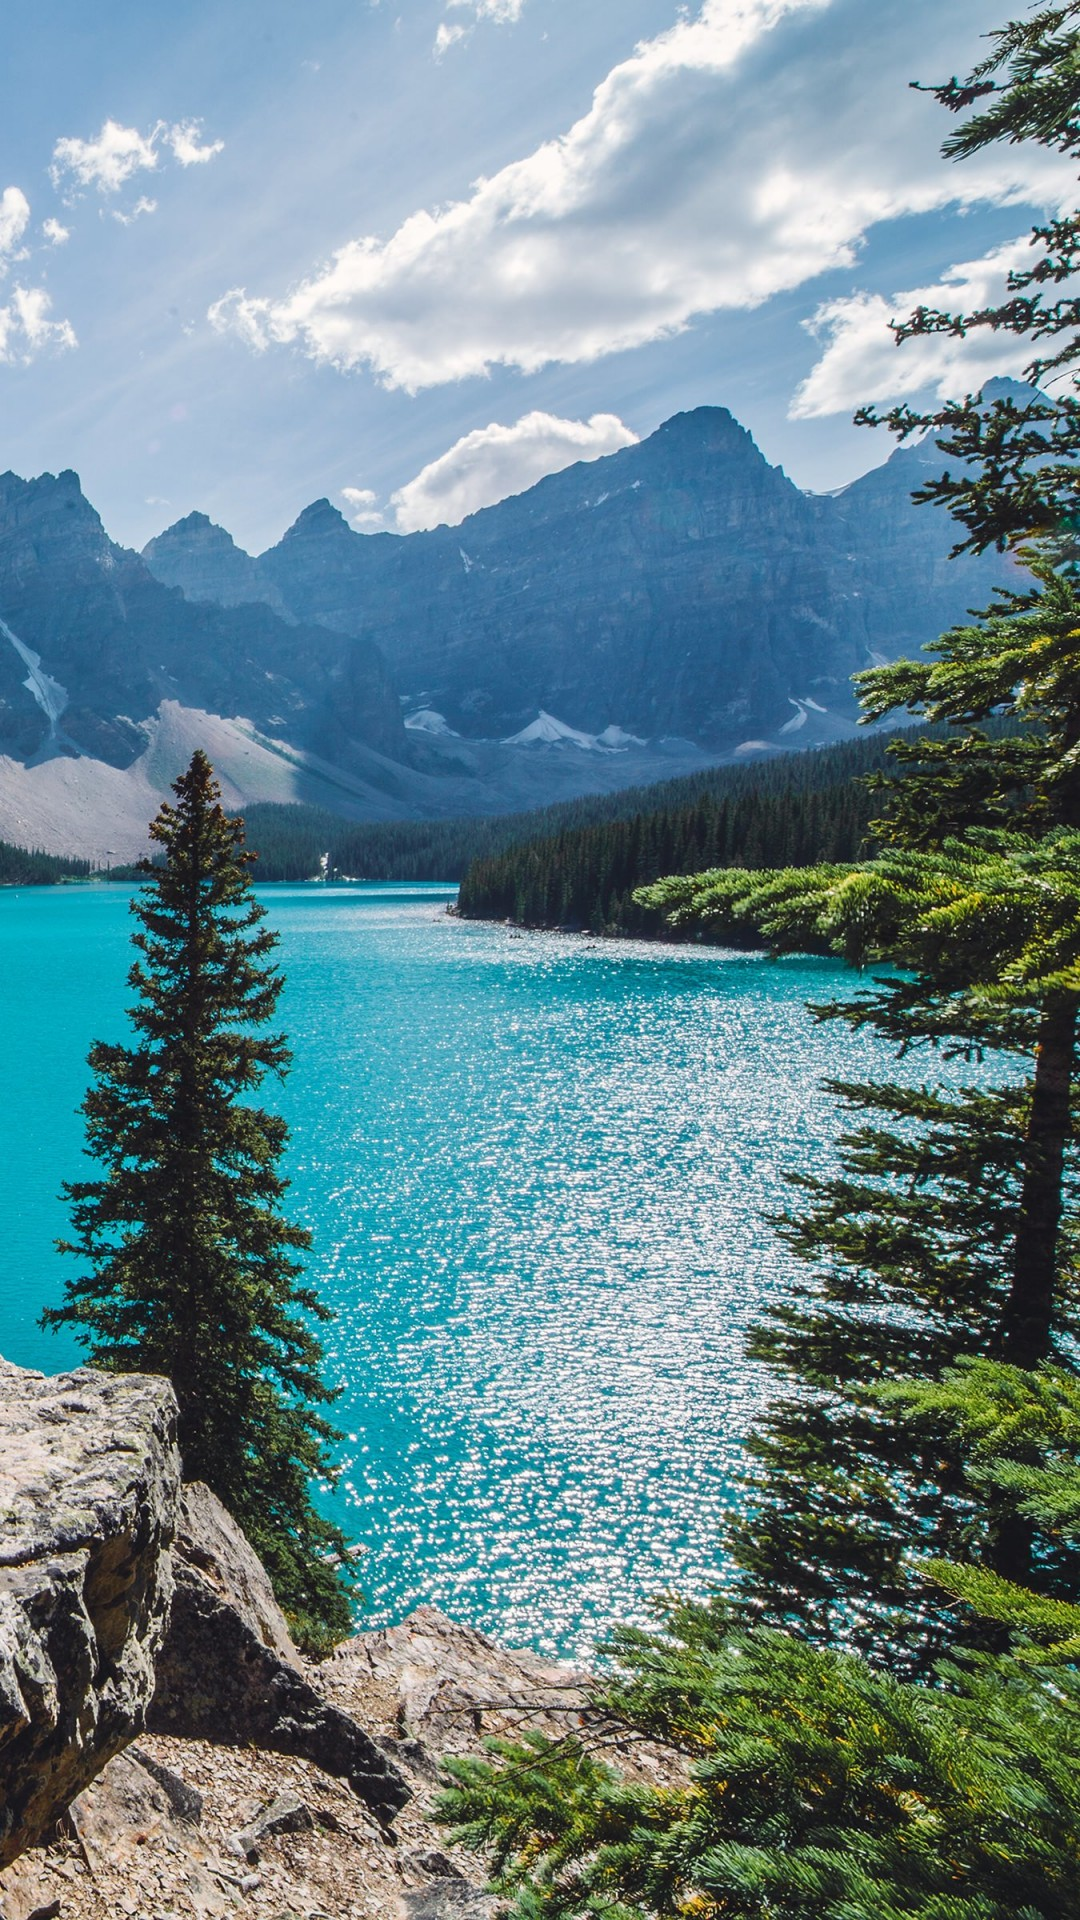 Sunny day over Moraine Lake Wallpaper for SAMSUNG Galaxy Note 3